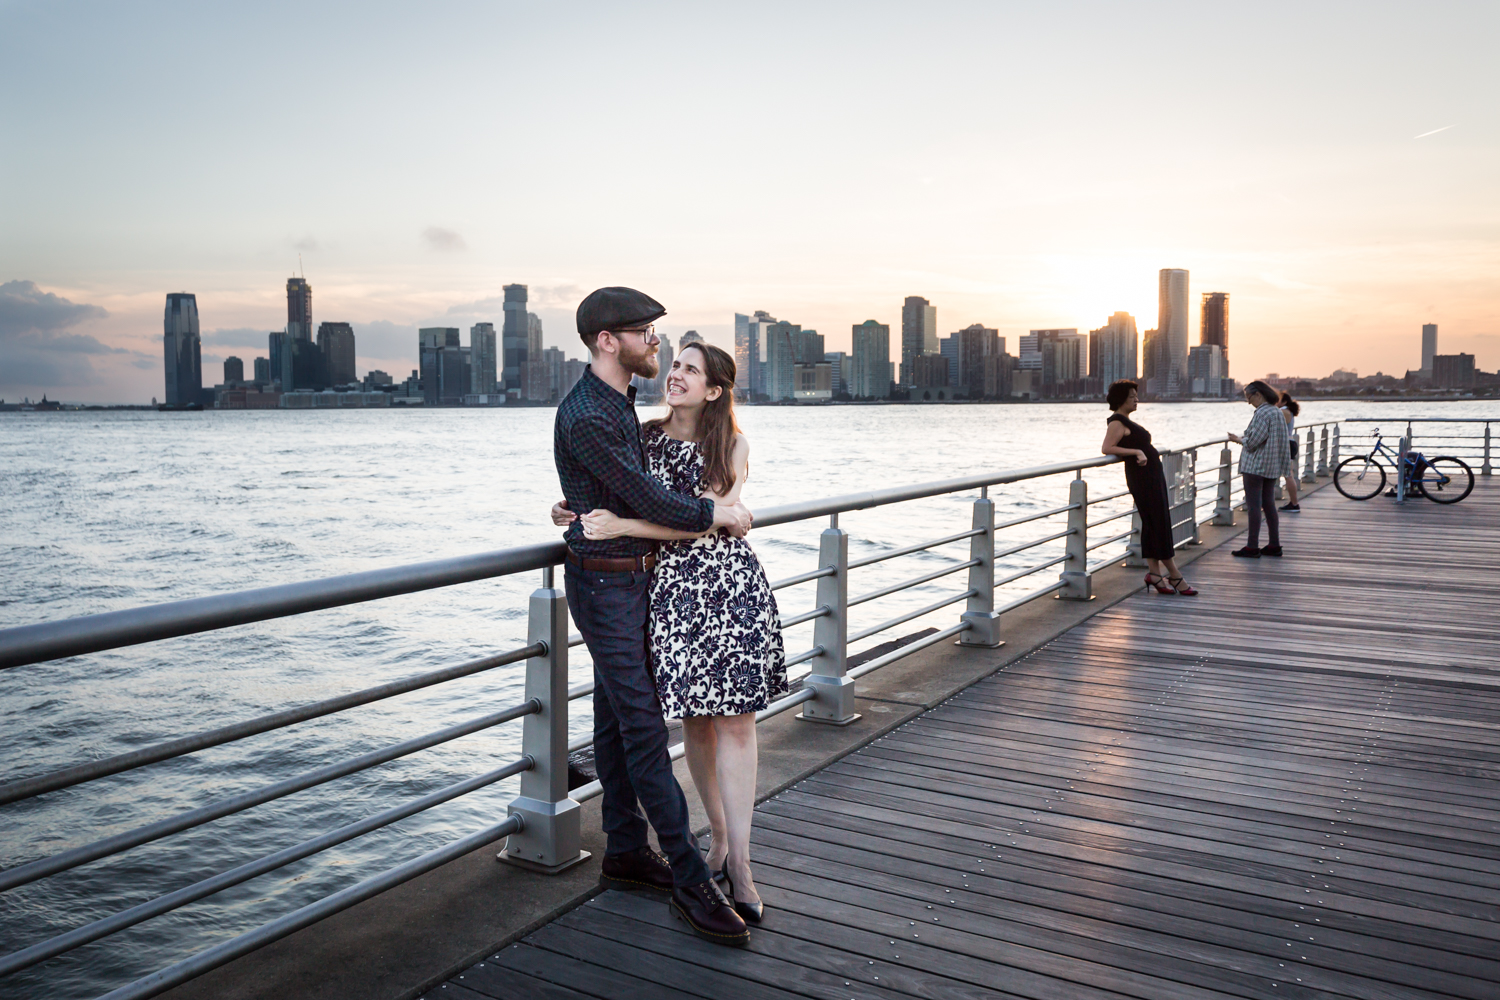 Couple leaning against railing in Hudson River waterfront park